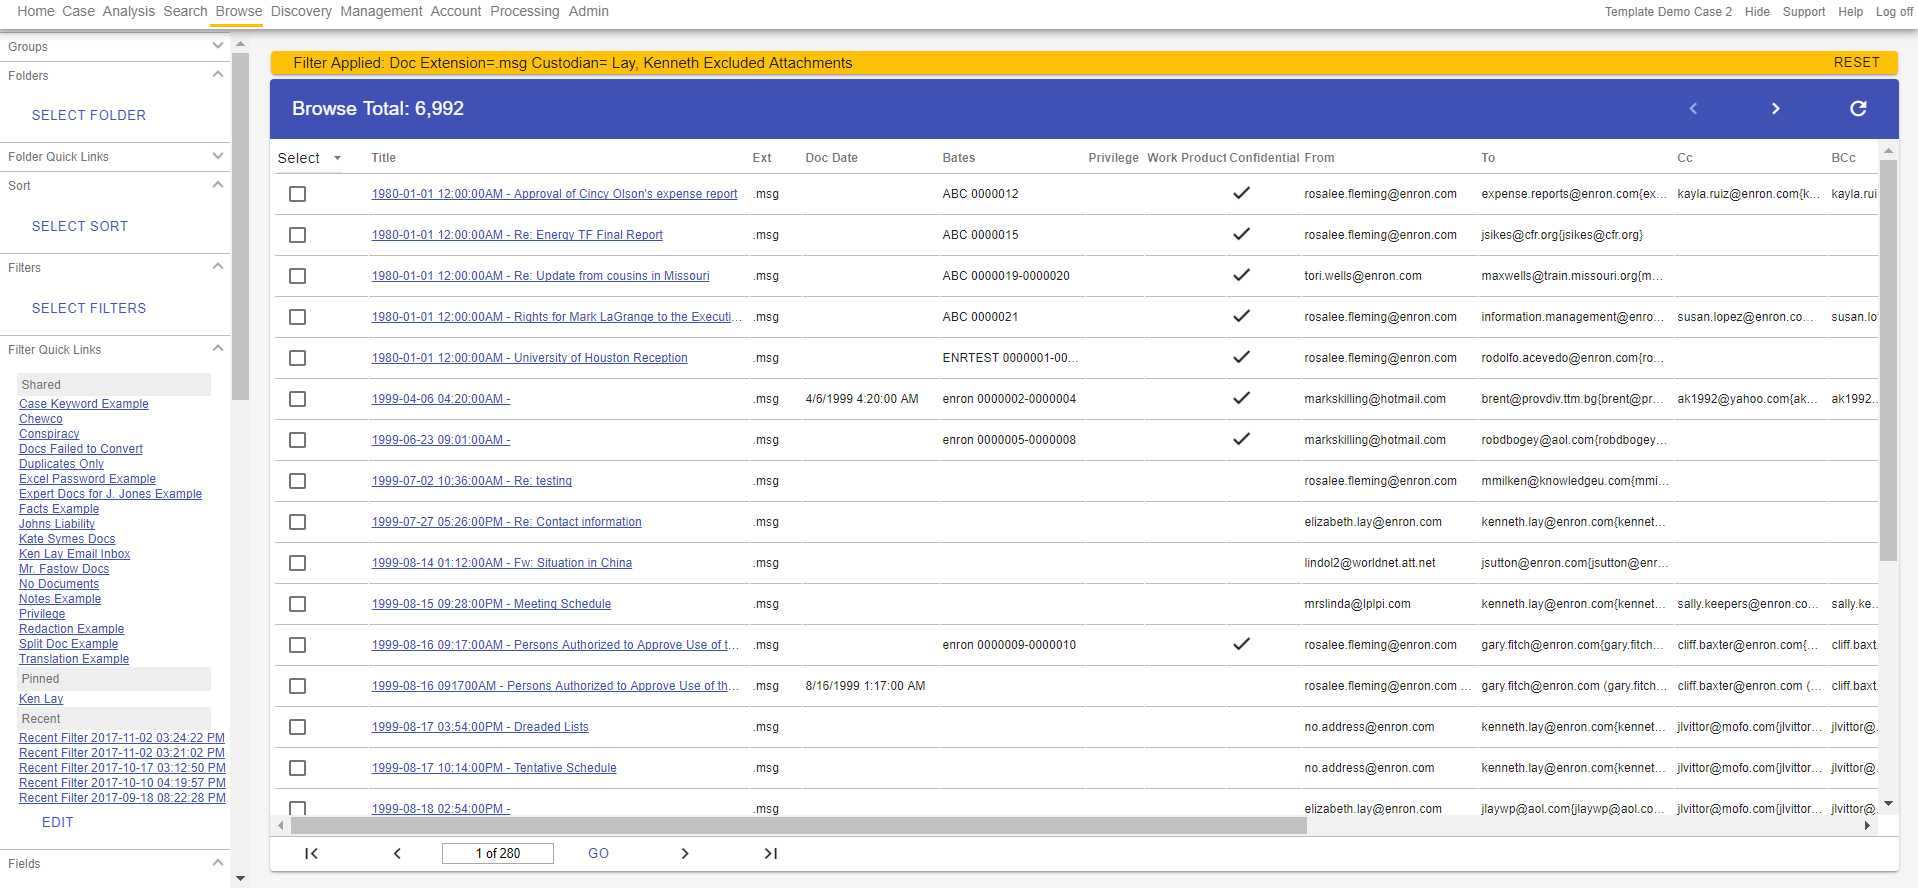 This is the browse screen on the Lexbe eDiscovery Platform. The simple user interface and fully integrated workflow equips boutique firms with the ability to handle document intensive cases in-house.